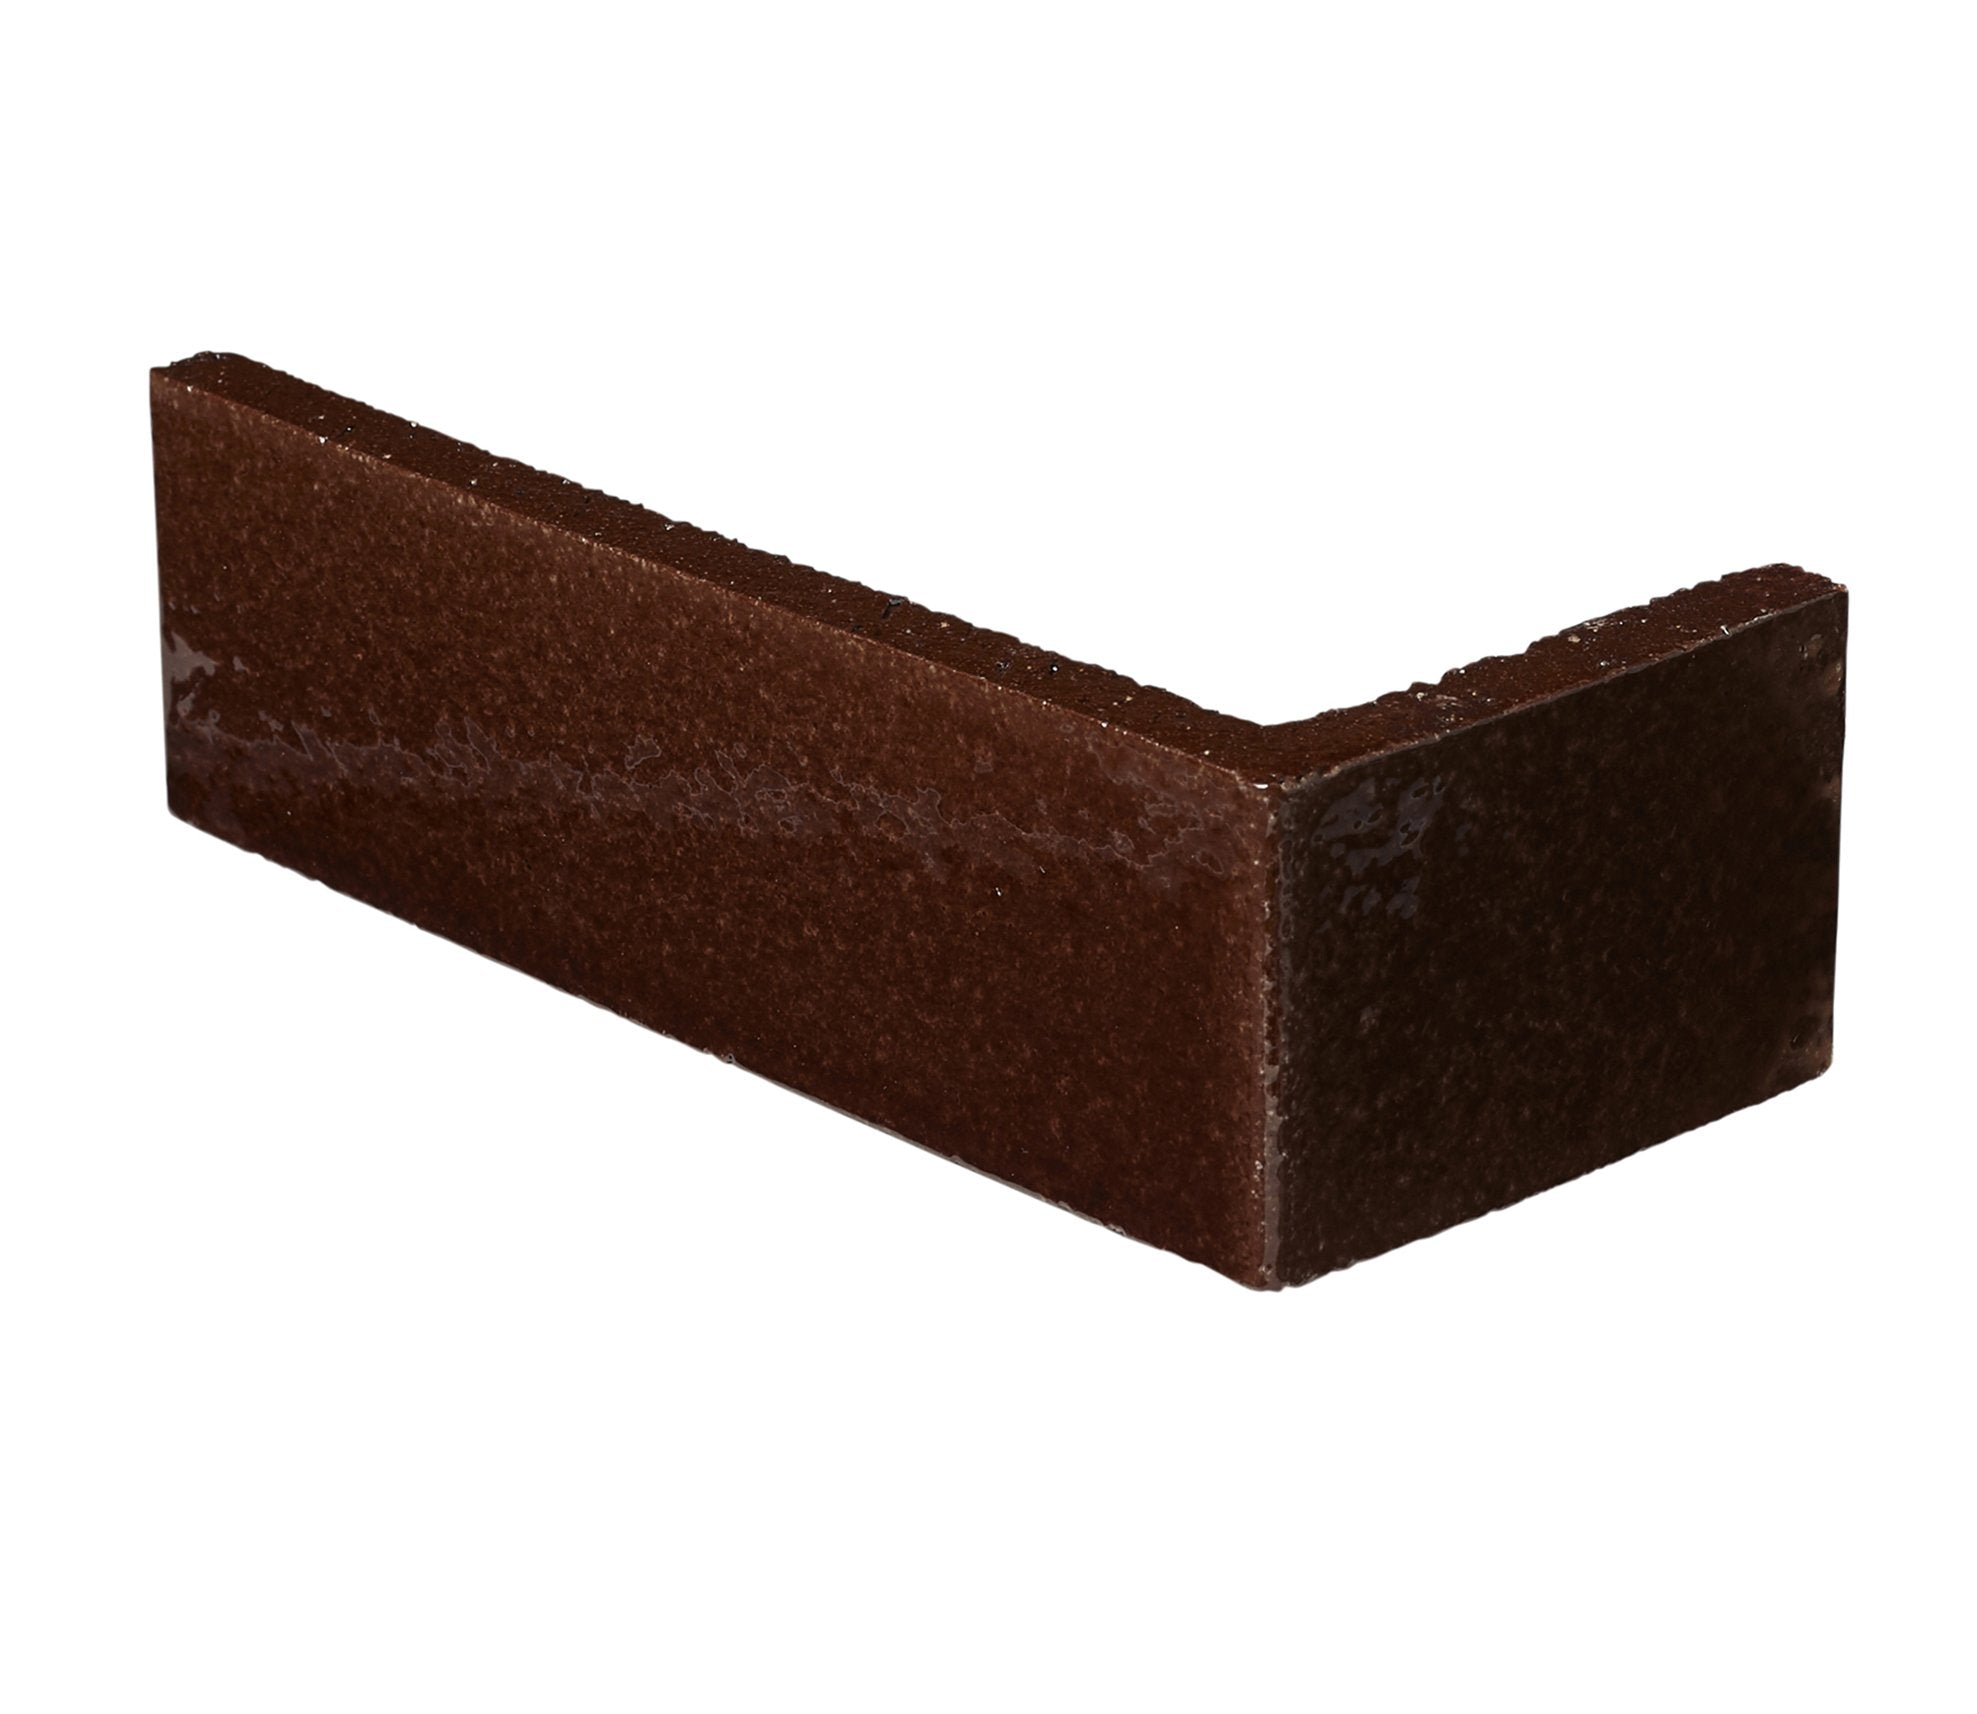 Terra Firma Glazed Bricks Product Image 28